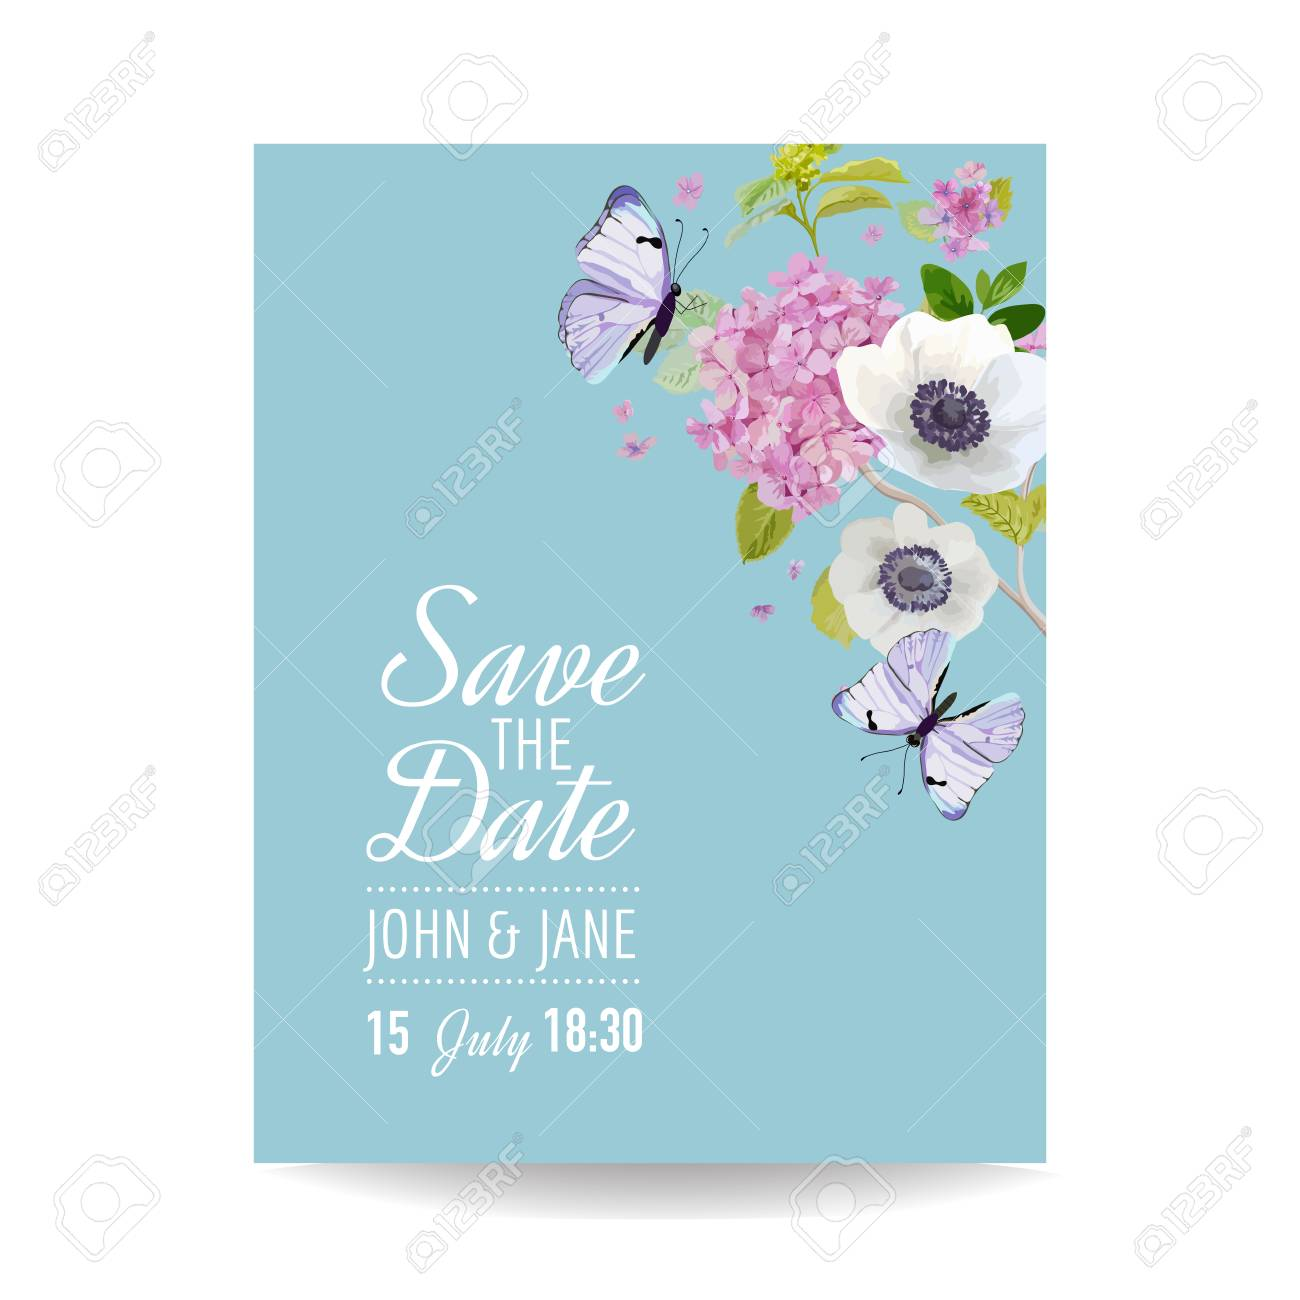 save the date card wedding invitation template botanical card